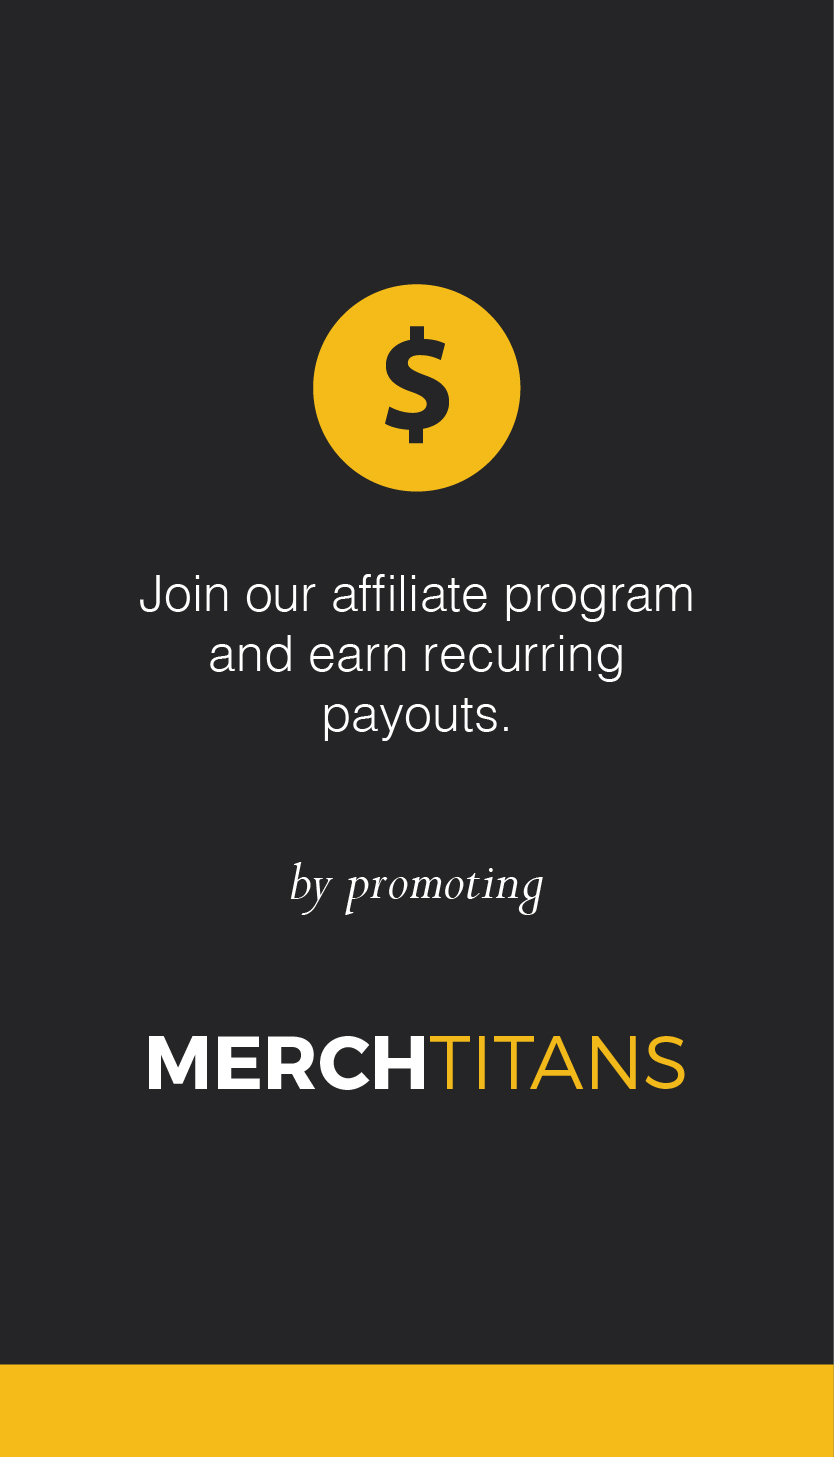 Affiliates of Merch Titans